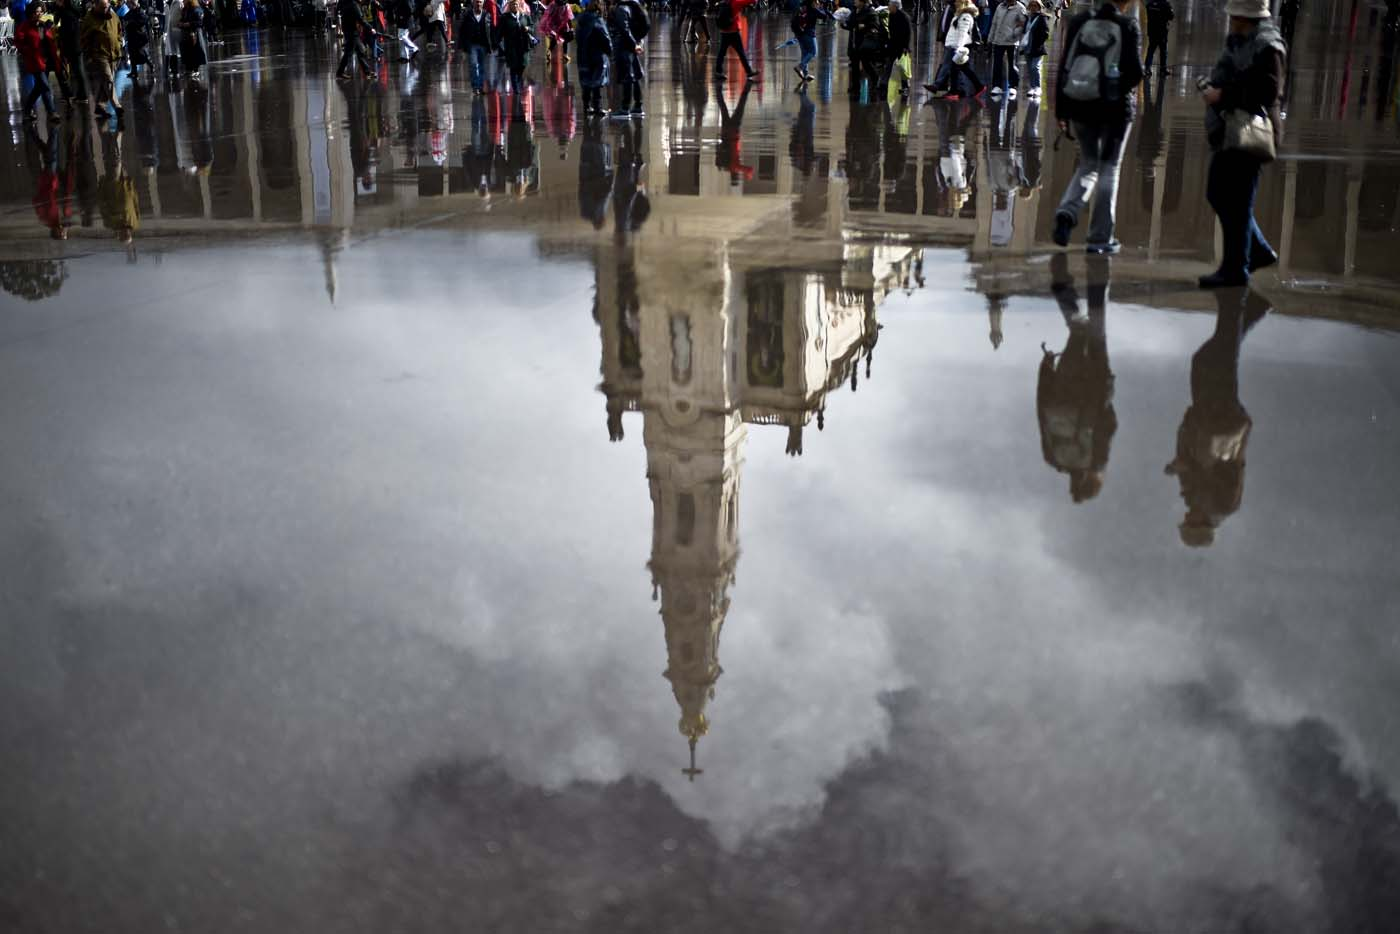 """Nossa Senhora do Rosario de Fatima"" Basilica is reflected on the wet pavement in Fatima, central Portugal, on May 12, 2017. Two of the three child shepherds who reported apparitions of the Virgin Mary in Fatima, Portugal, one century ago, will be declared saints on May 13, 2017 by Pope Francis. The canonisation of Jacinta and Francisco Marto will take place during the Argentinian pontiff's visit to a Catholic shrine visited by millions of pilgrims every year. / AFP PHOTO / PATRICIA DE MELO MOREIRA"